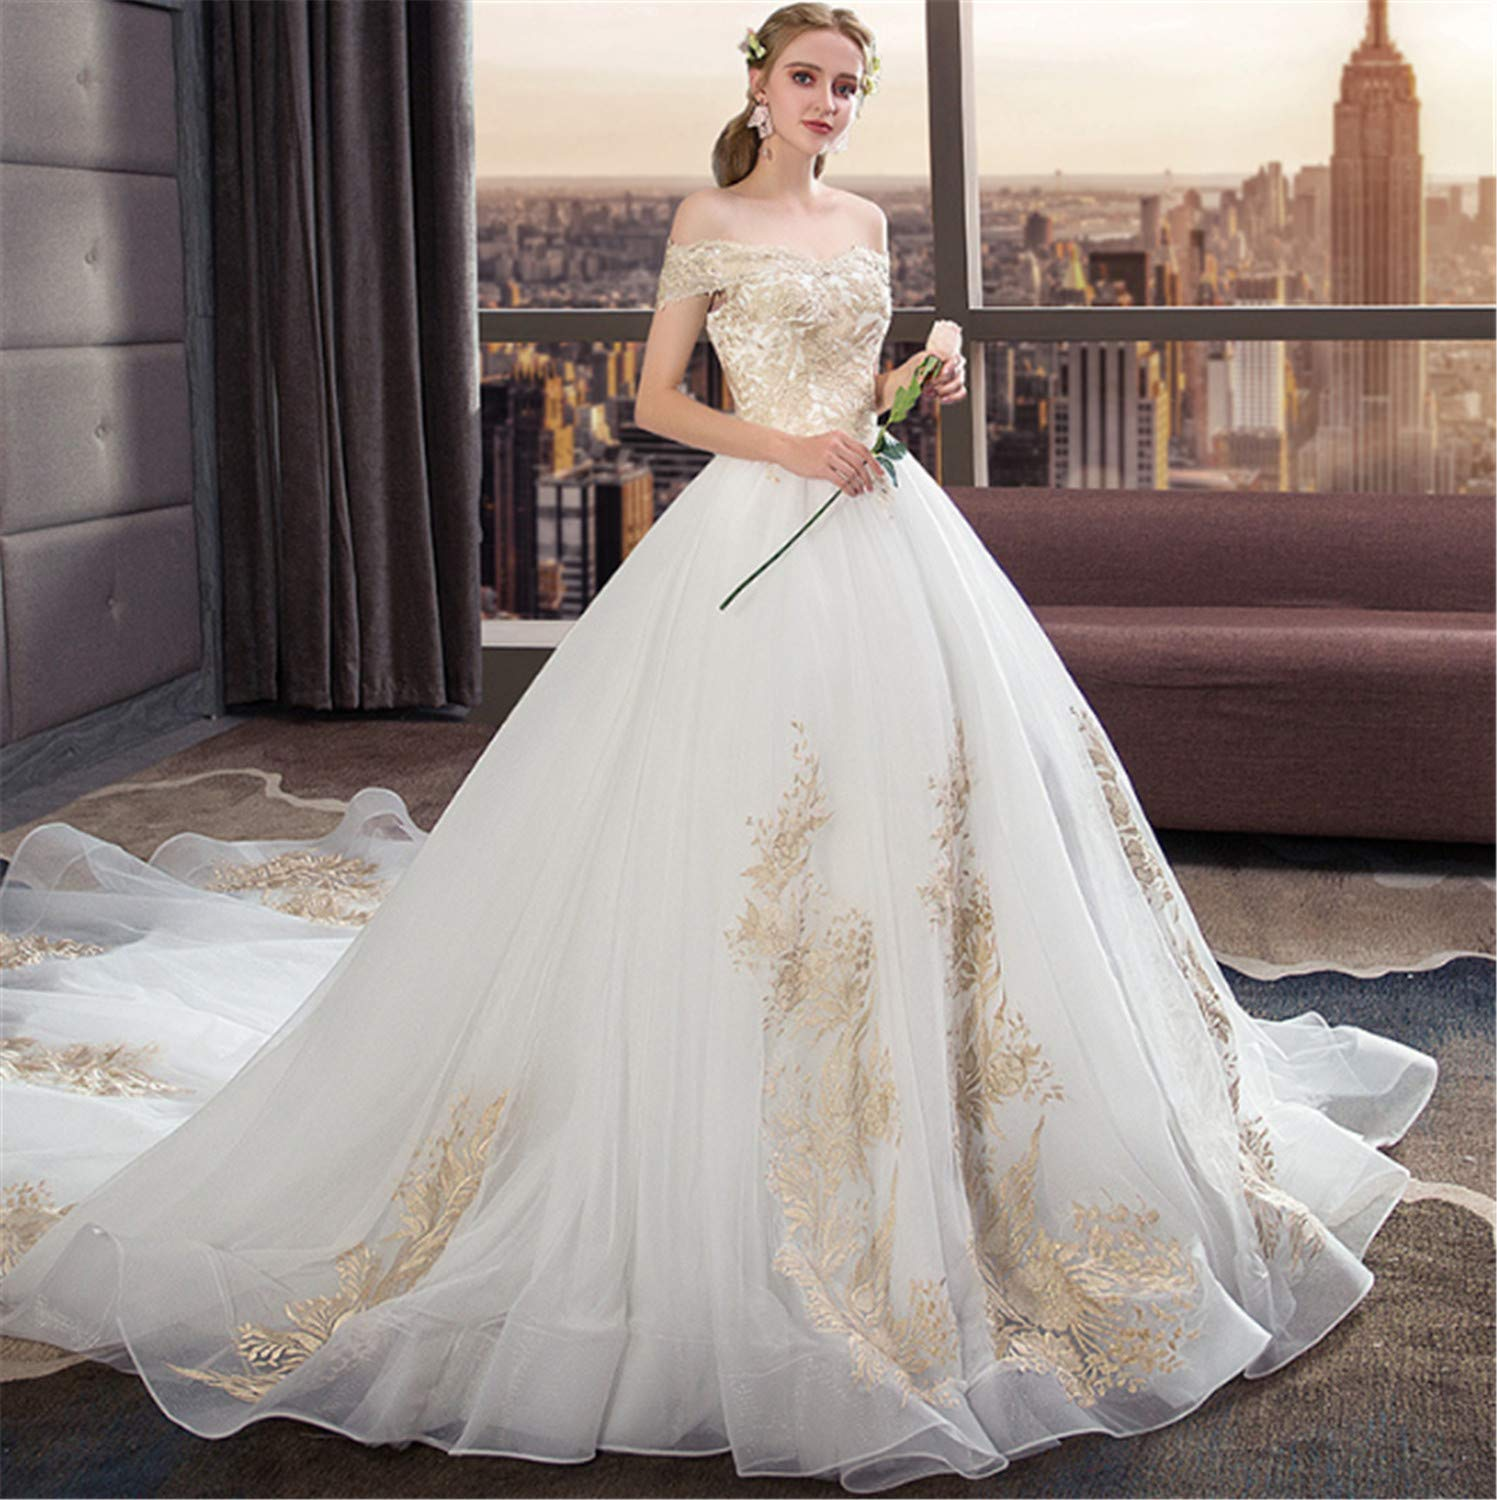 Amazon Elegencez Wedding Dressladies Strapless Backless Dress With Sleeves Perfect Princess Dragged Big Long Trailing Lace White Sports: Big Wedding Dresses Lace At Reisefeber.org